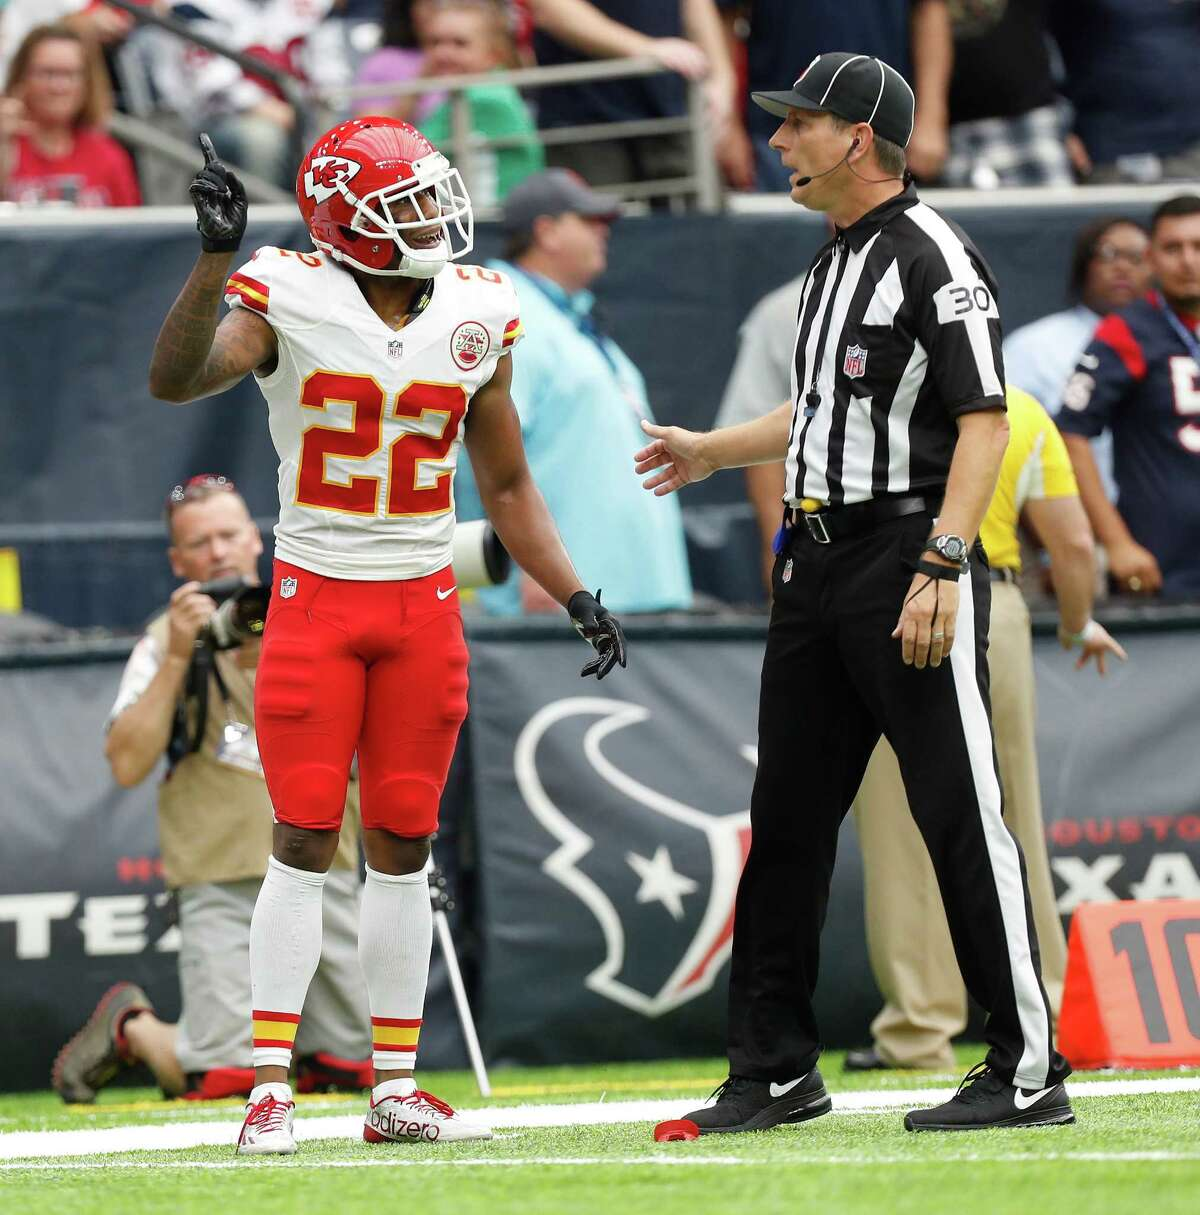 Kansas City Chiefs cornerback Marcus Peters (22) argues with the referee after getting called for taunting Houston Texans wide receiver Will Fuller (15) during the second quarter of an NFL football game at NRG Stadium, Sunday, Sept. 18, 2016 in Houston.